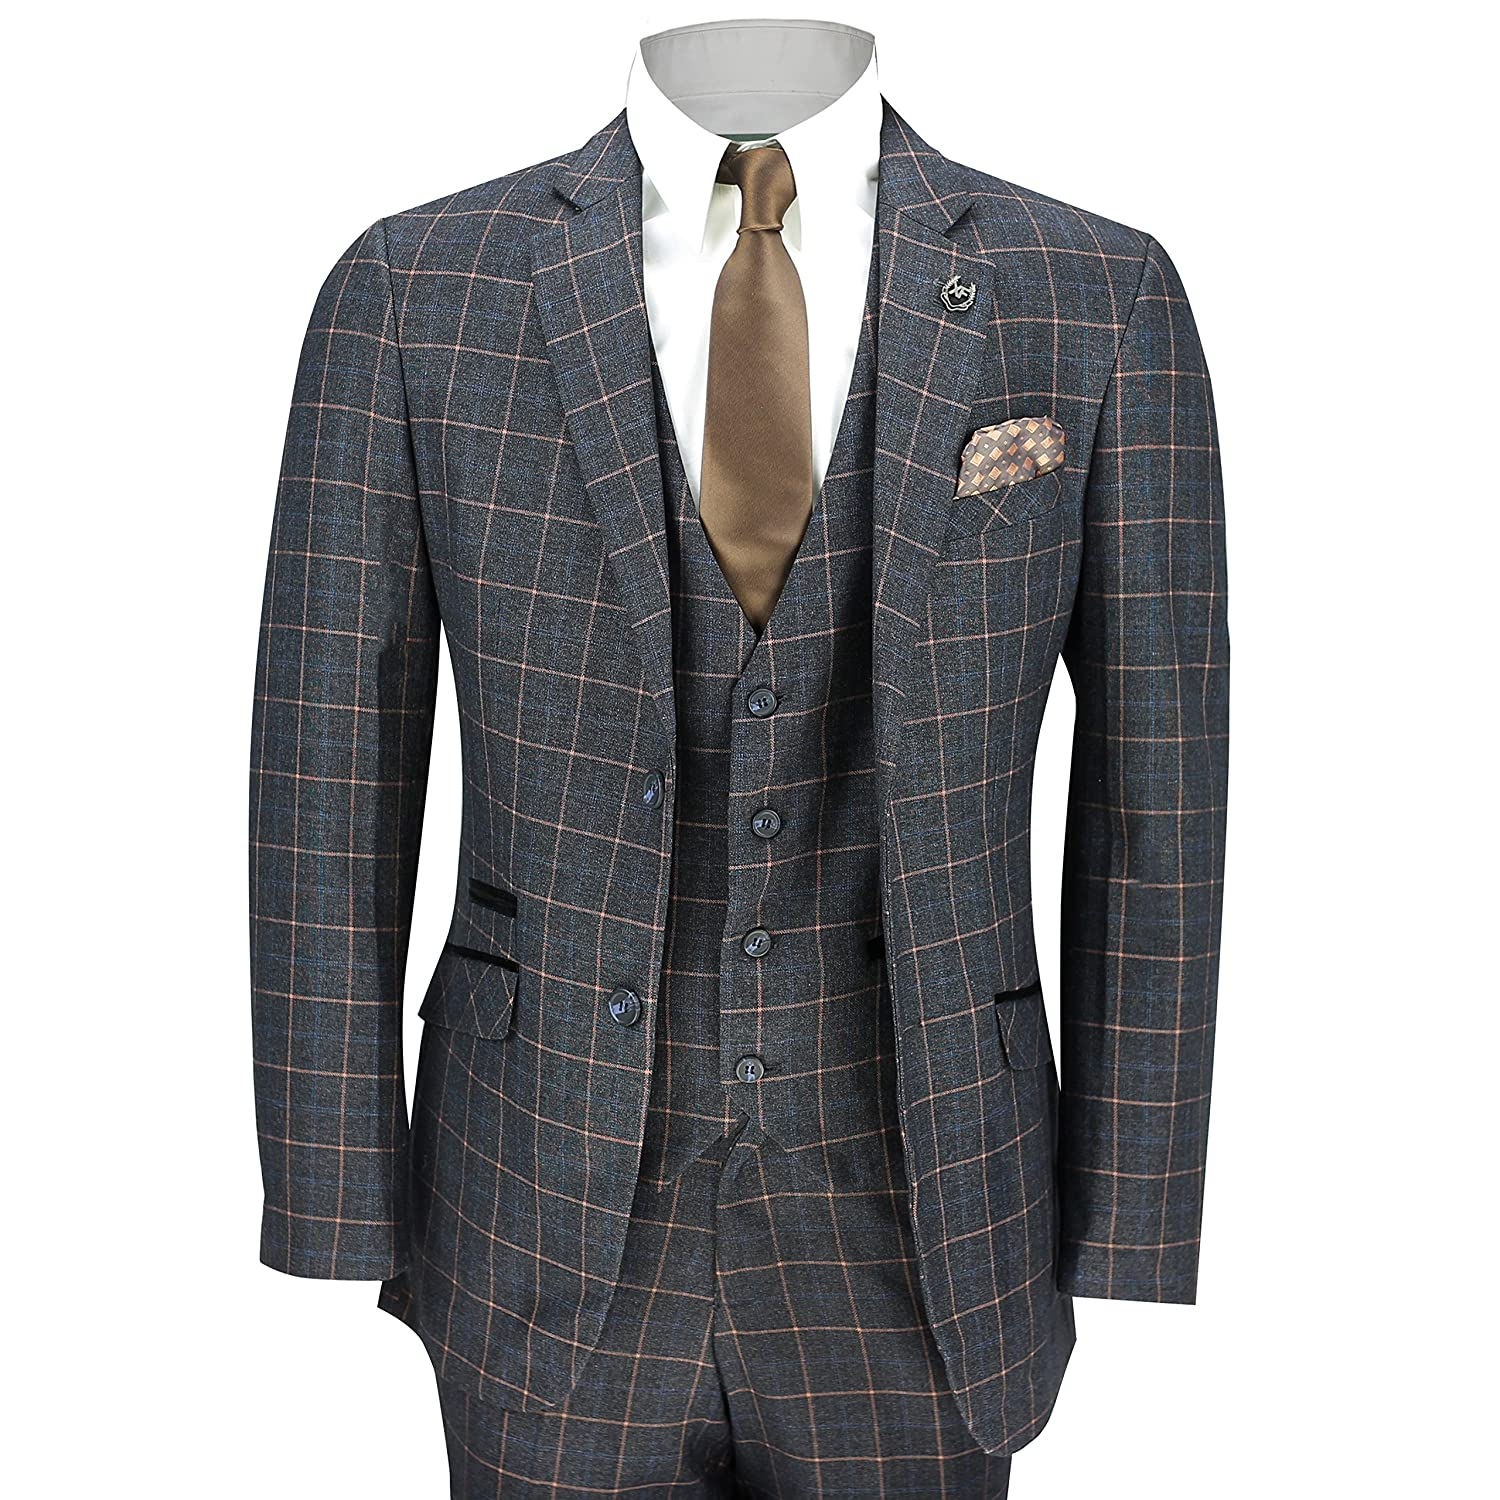 Peaky Blinders & Boardwalk Empire: Men's 1920s Gangster Clothing XPOSED Mens 3 Piece Blue Orange Window Check on Charcoal Grey Retro Smart Tailored Fit Vintage Suit £96.99 AT vintagedancer.com